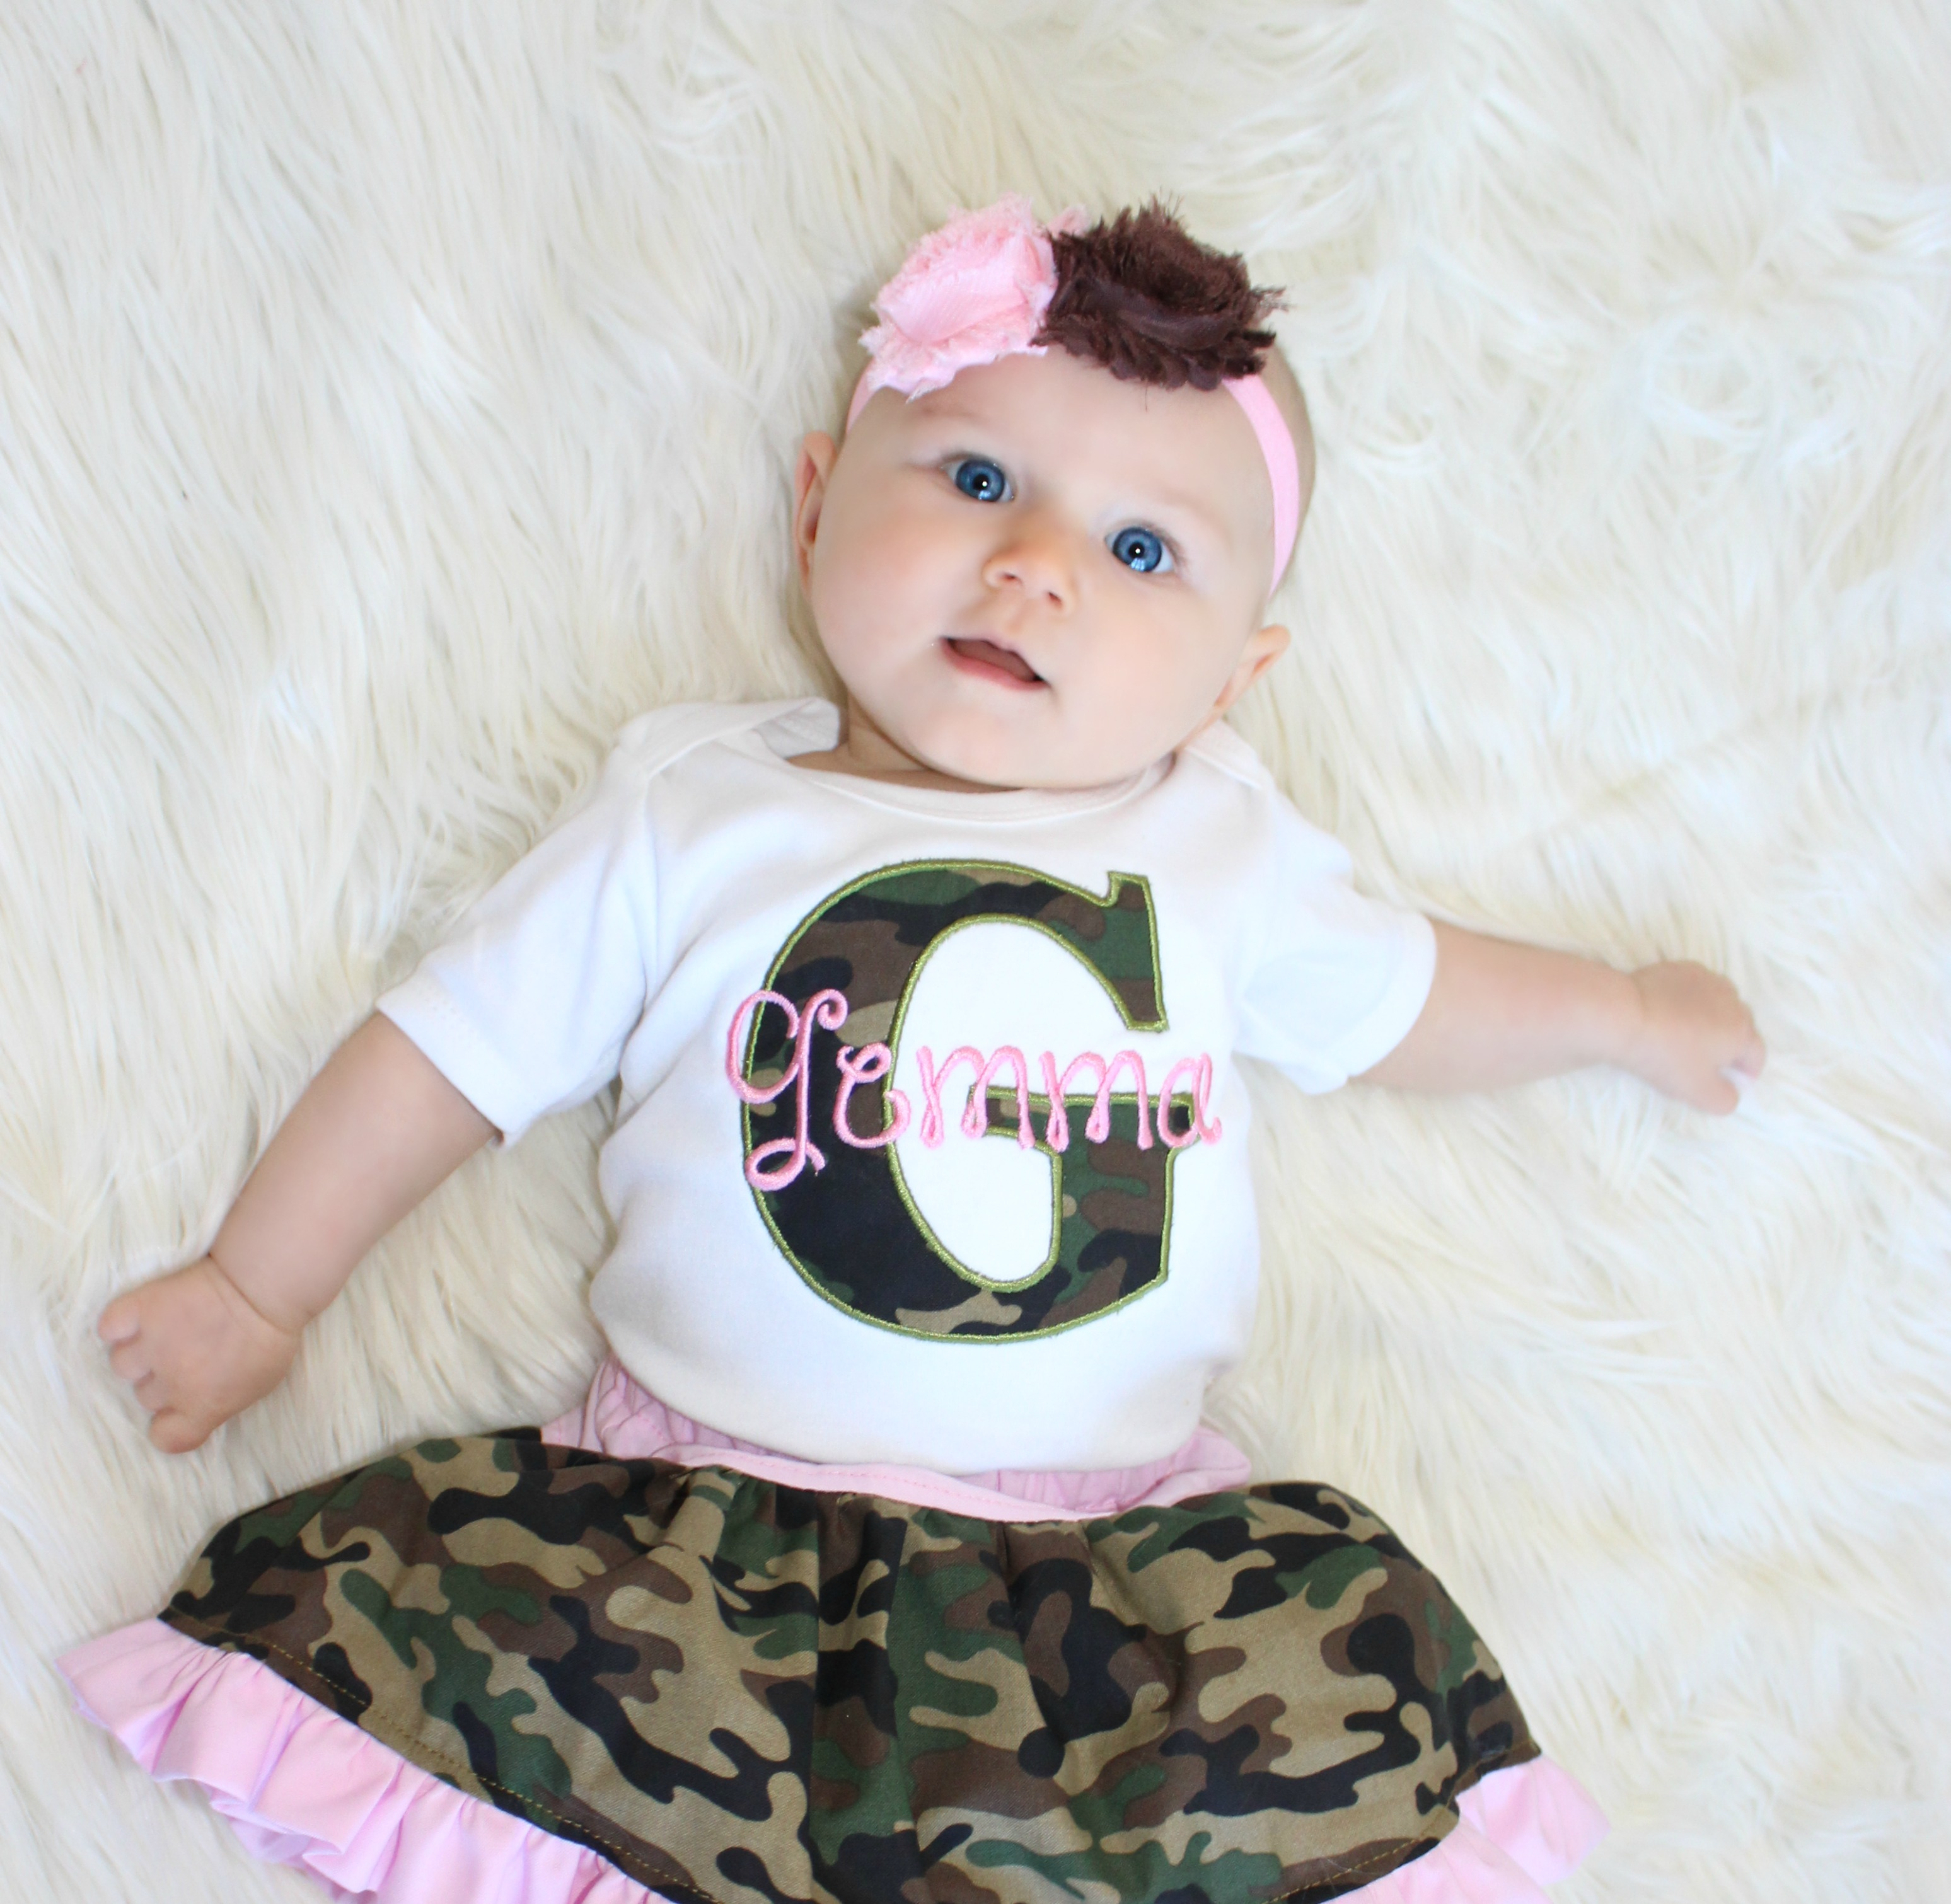 a1ff7a181 Monogrammed Baby Girl Camo Outfit | Sassy Locks